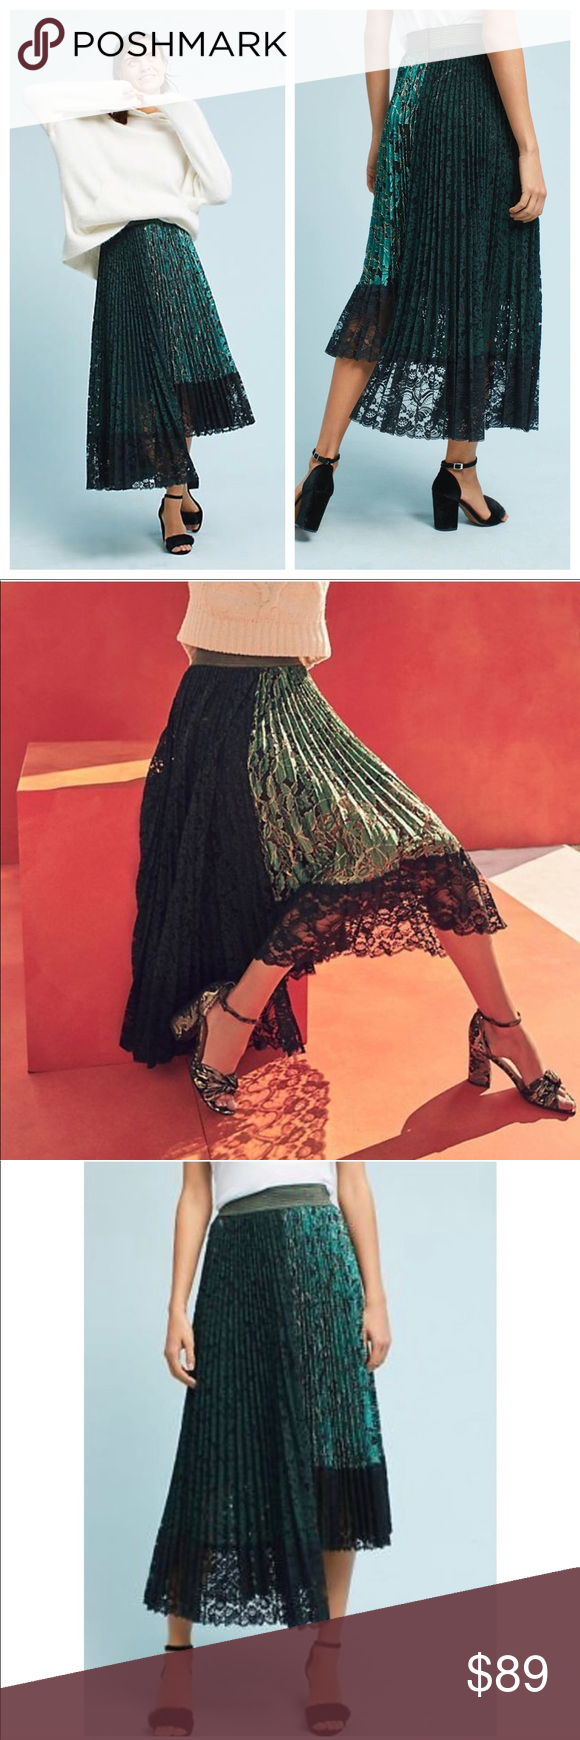 4078b2aa15 Anthro Shimmer Asymmetric Lace Pleated skirt Anthropologie Shimmer  Asymmetric Pleated Lace Midi skirt by Vivienne Tam